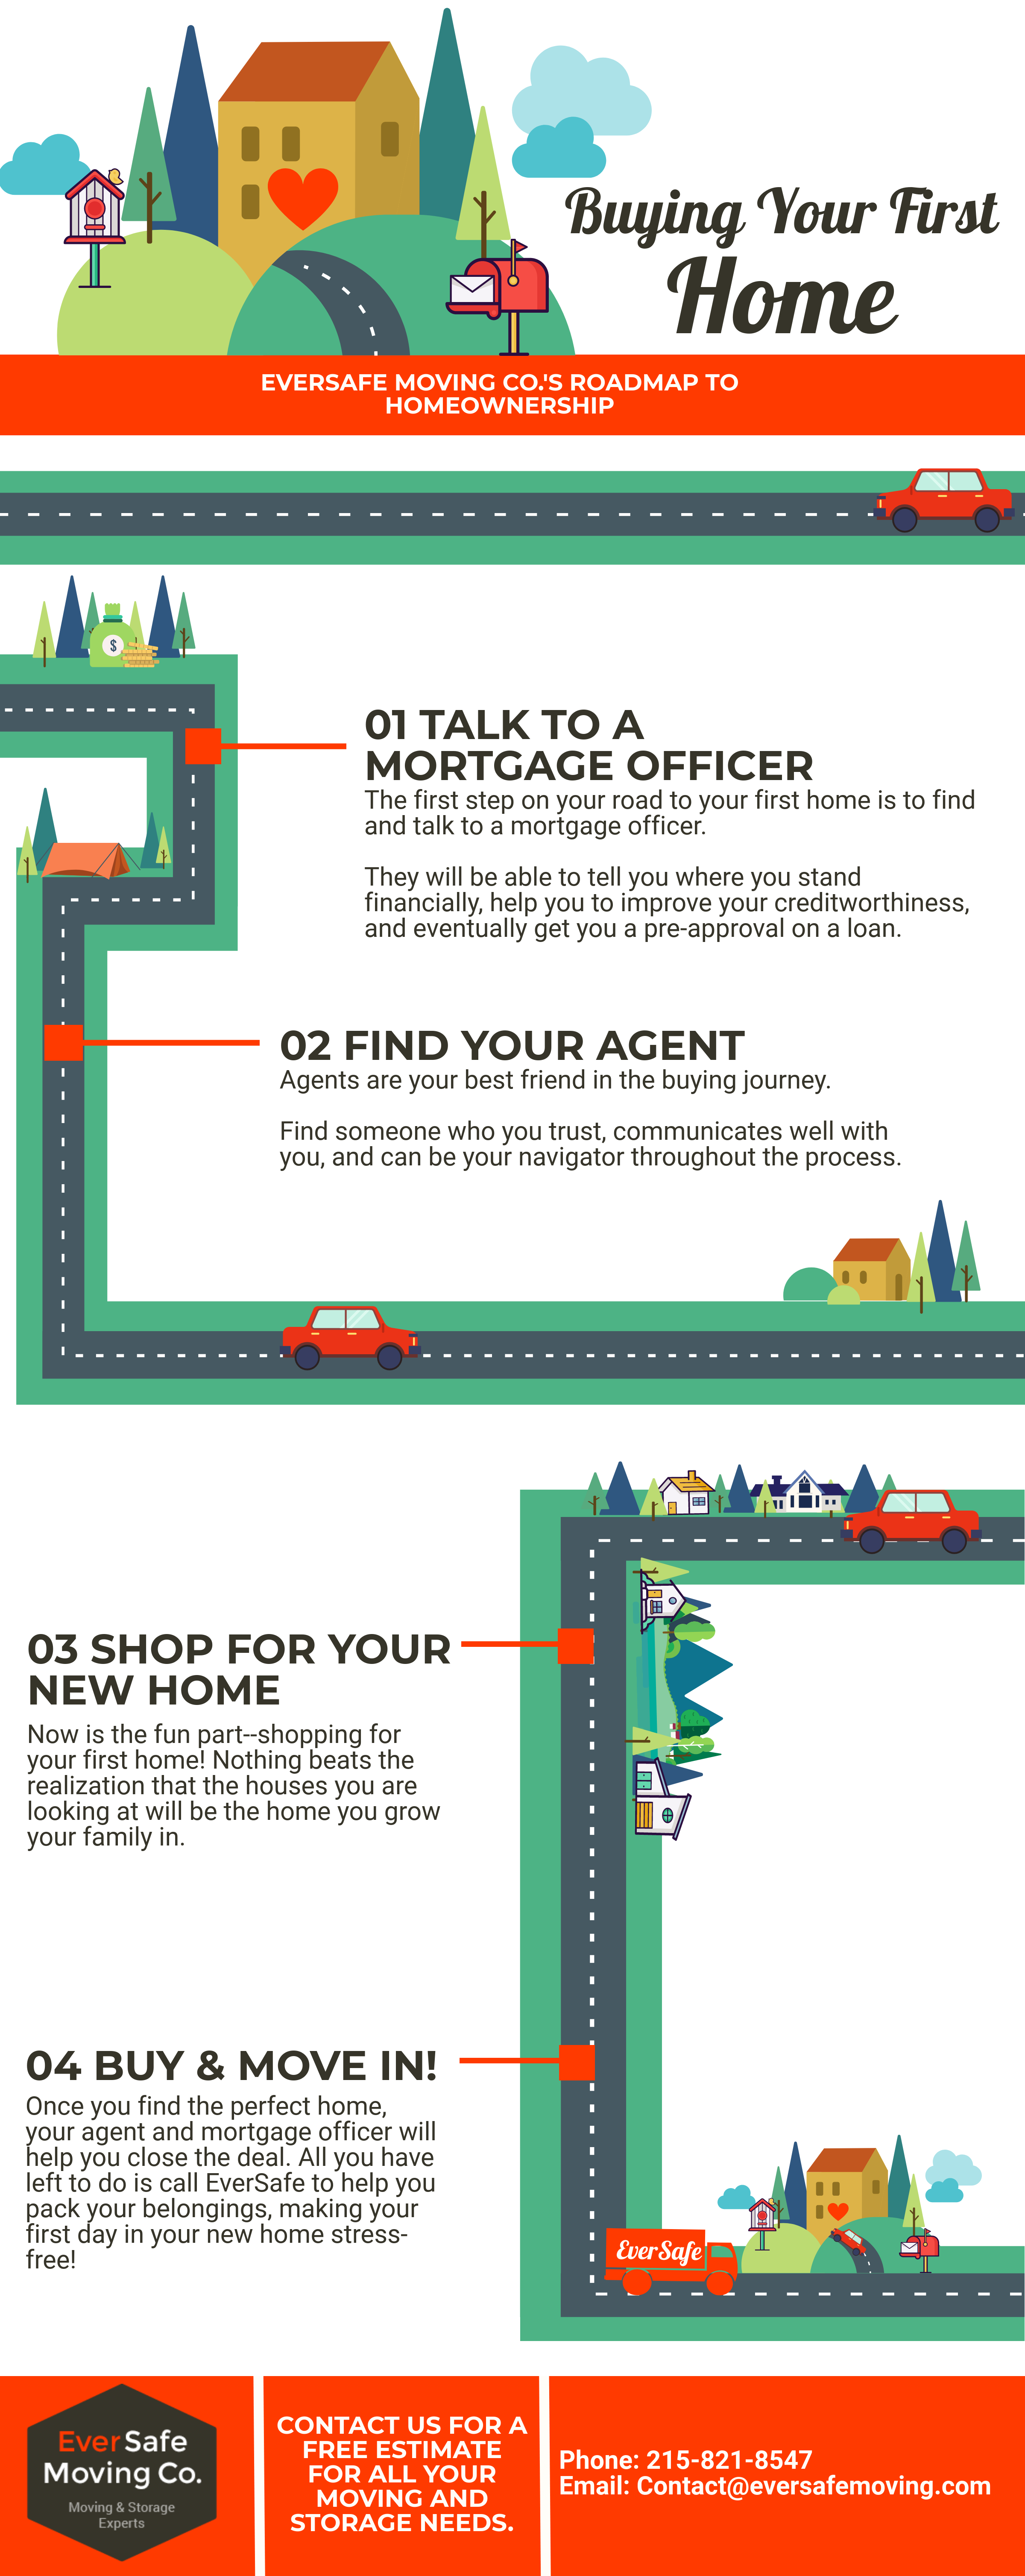 A roadmap to buying and moving into your first home